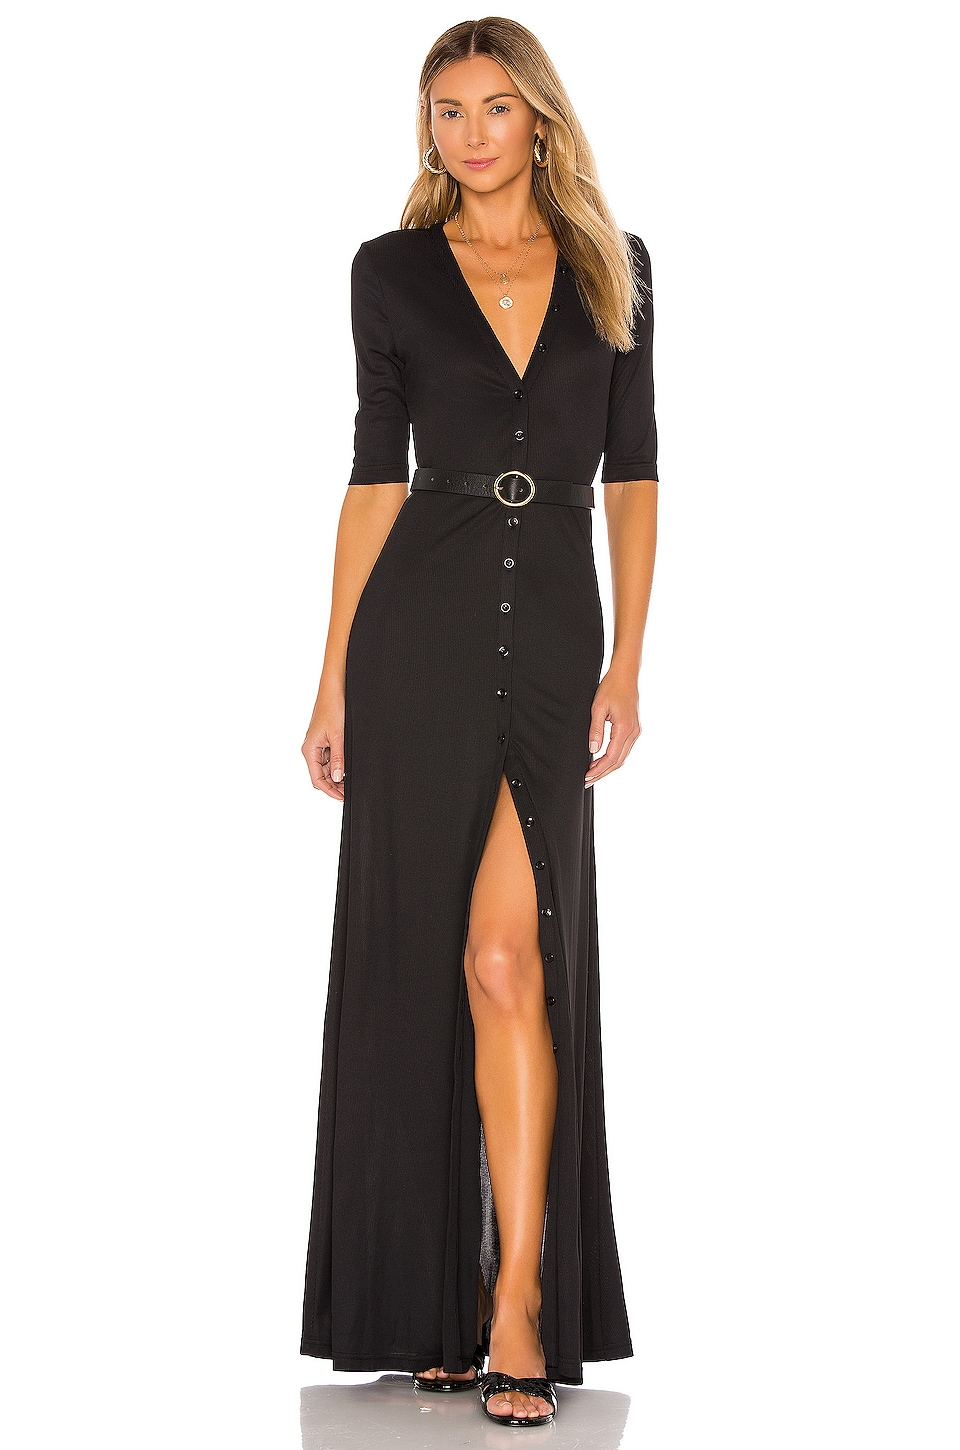 The Esperanza Maxi Dress             L'Academie                                                                                                       CA$ 226.98 8